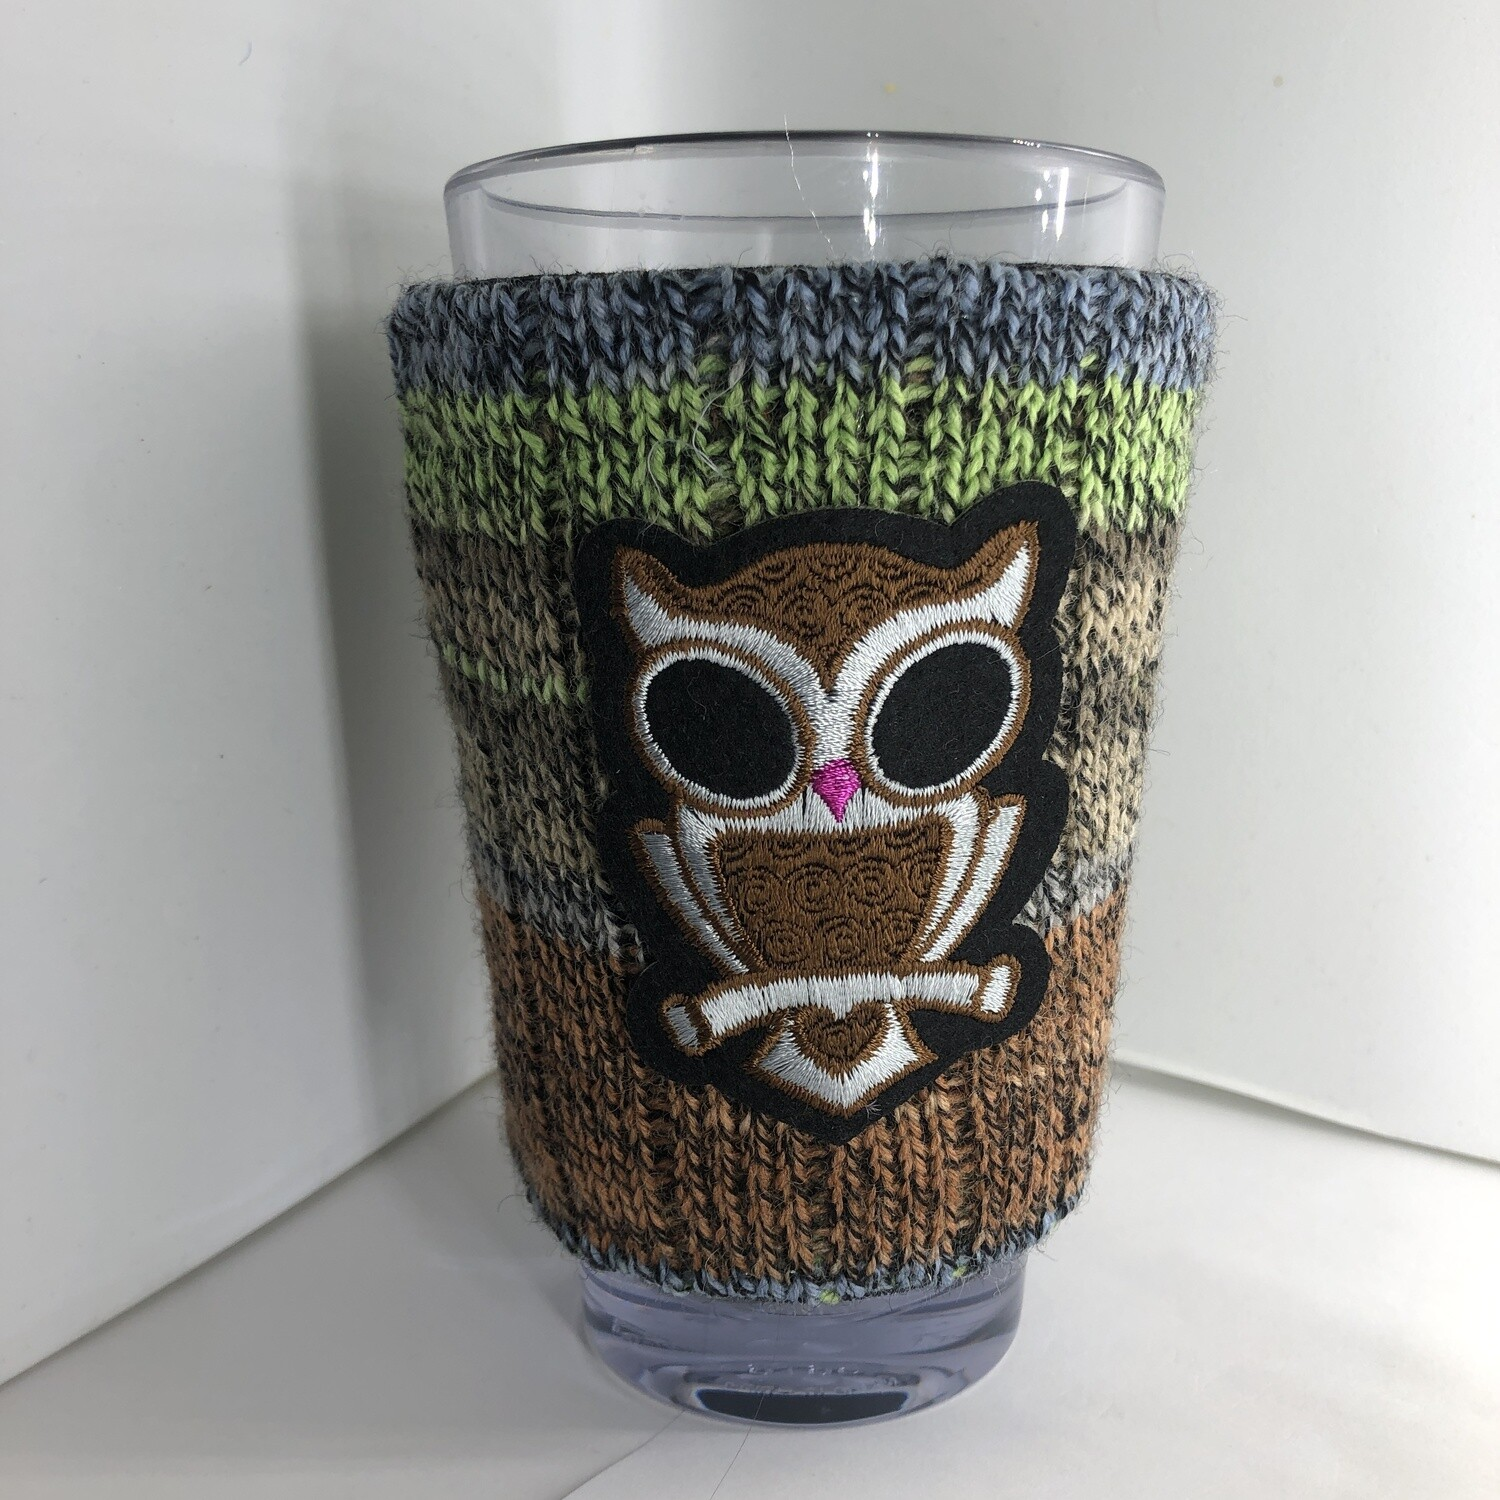 Scary Owl Koozie - Cup Holder